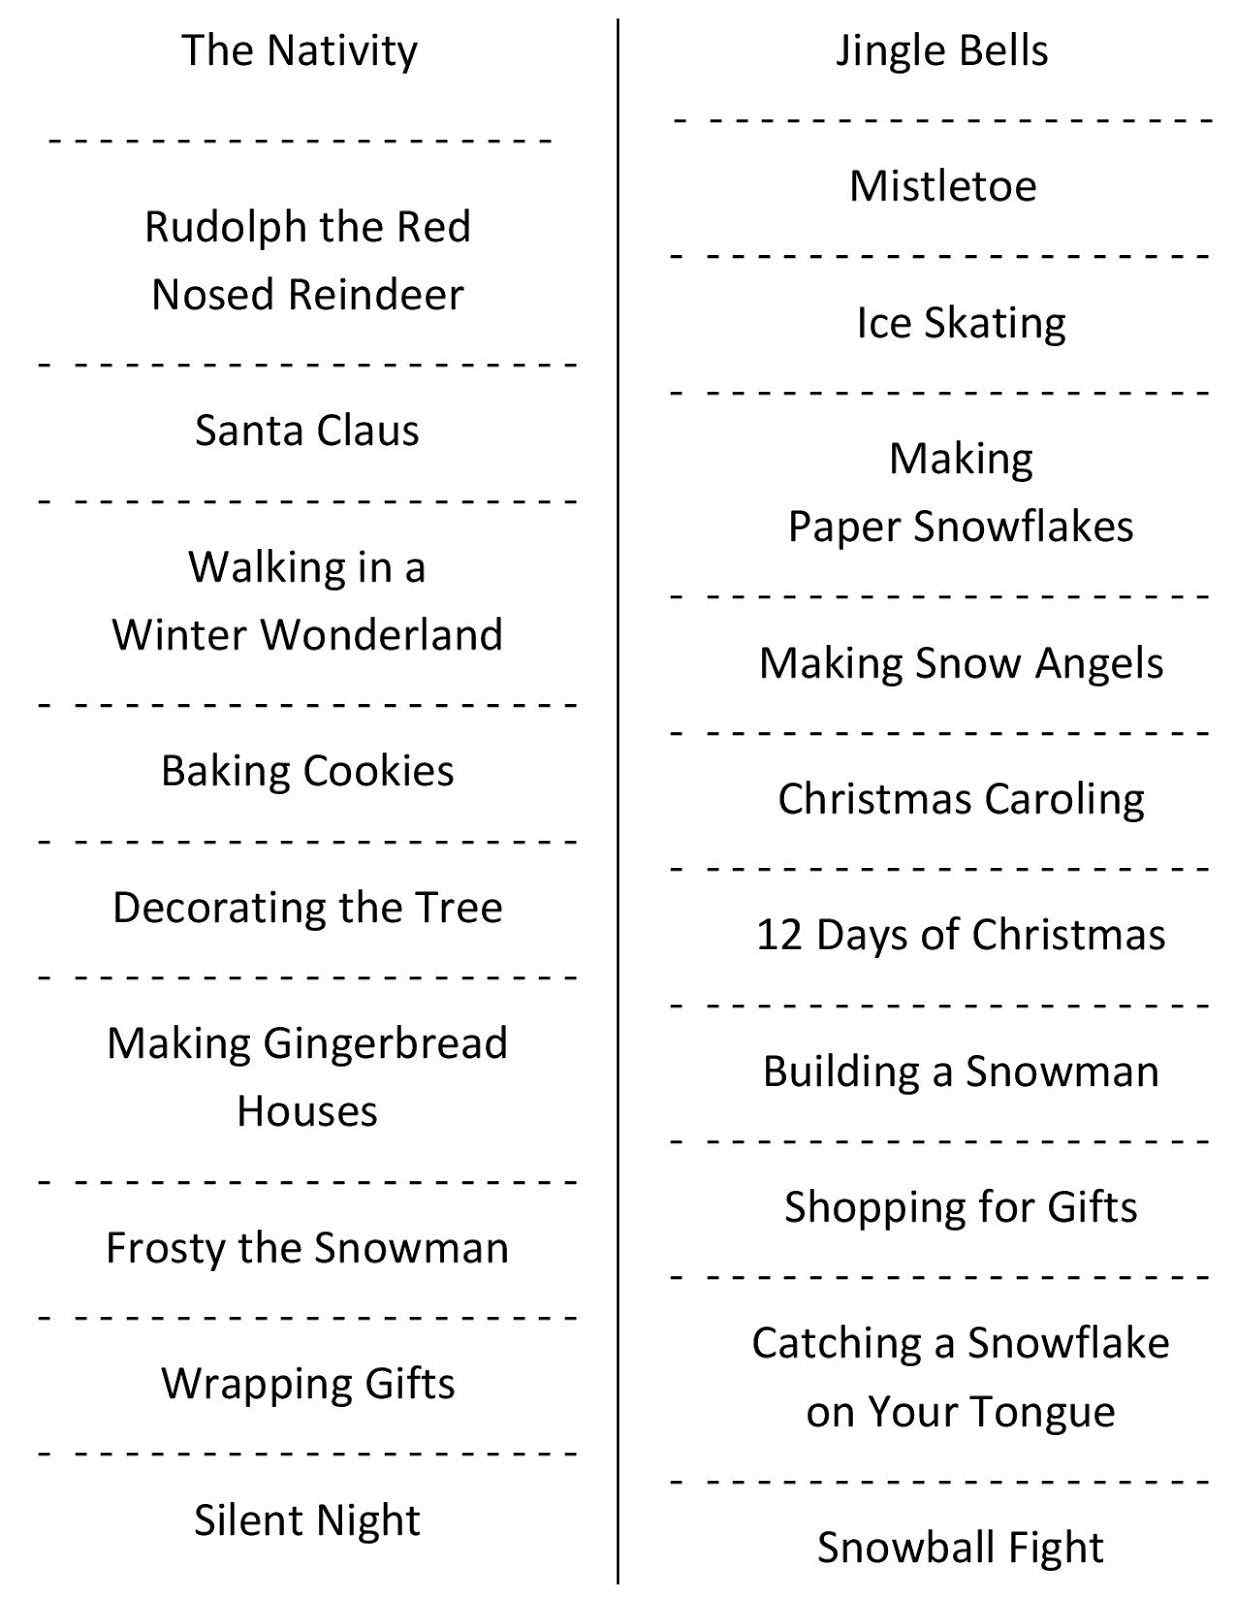 Holiday Party Games For Adults Christmas The Office Elegant - Holiday Office Party Games Free Printable